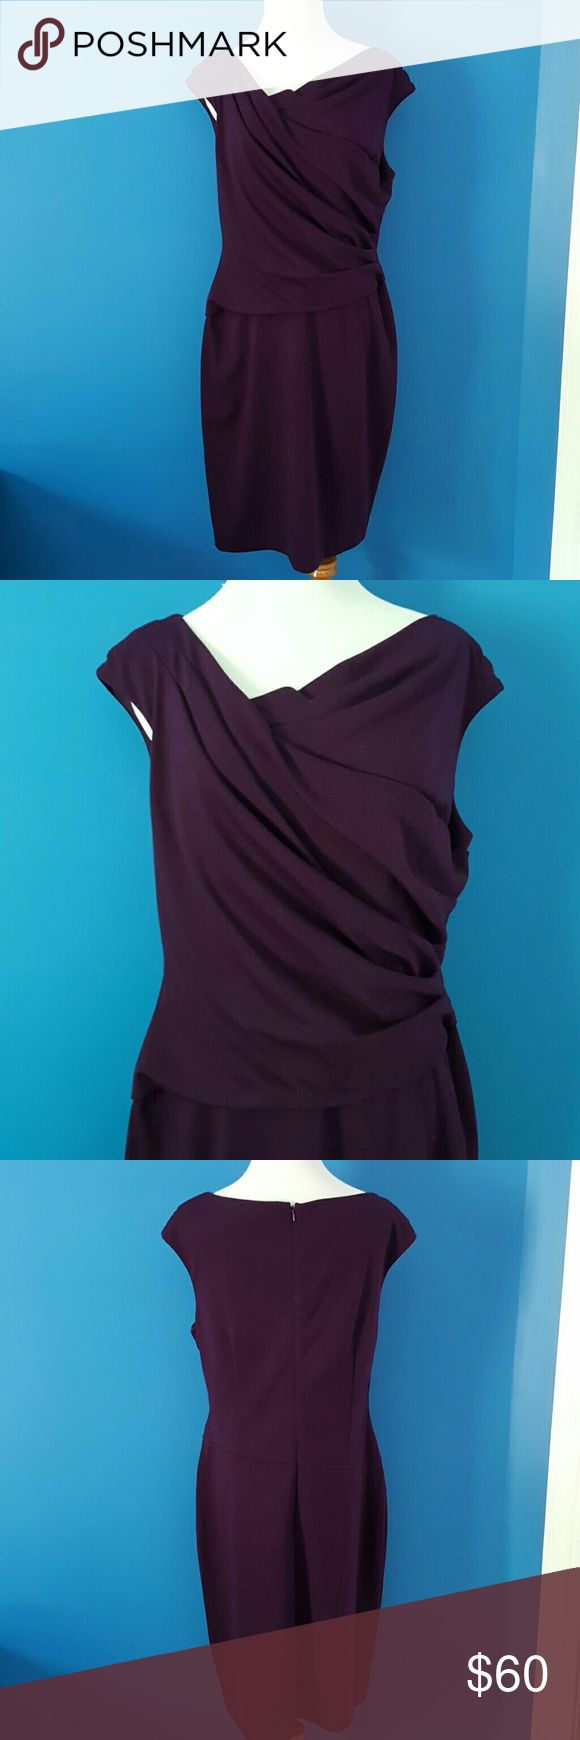 Fall Sale -- Ralph Lauren Dress Royal purple color. Side ruching. Cross over neckline. Cap sleeves. Heavy weight to material. Polyester, Rayon and Elastane blend. New with tags - never worn! Ralph Lauren Dresses Midi